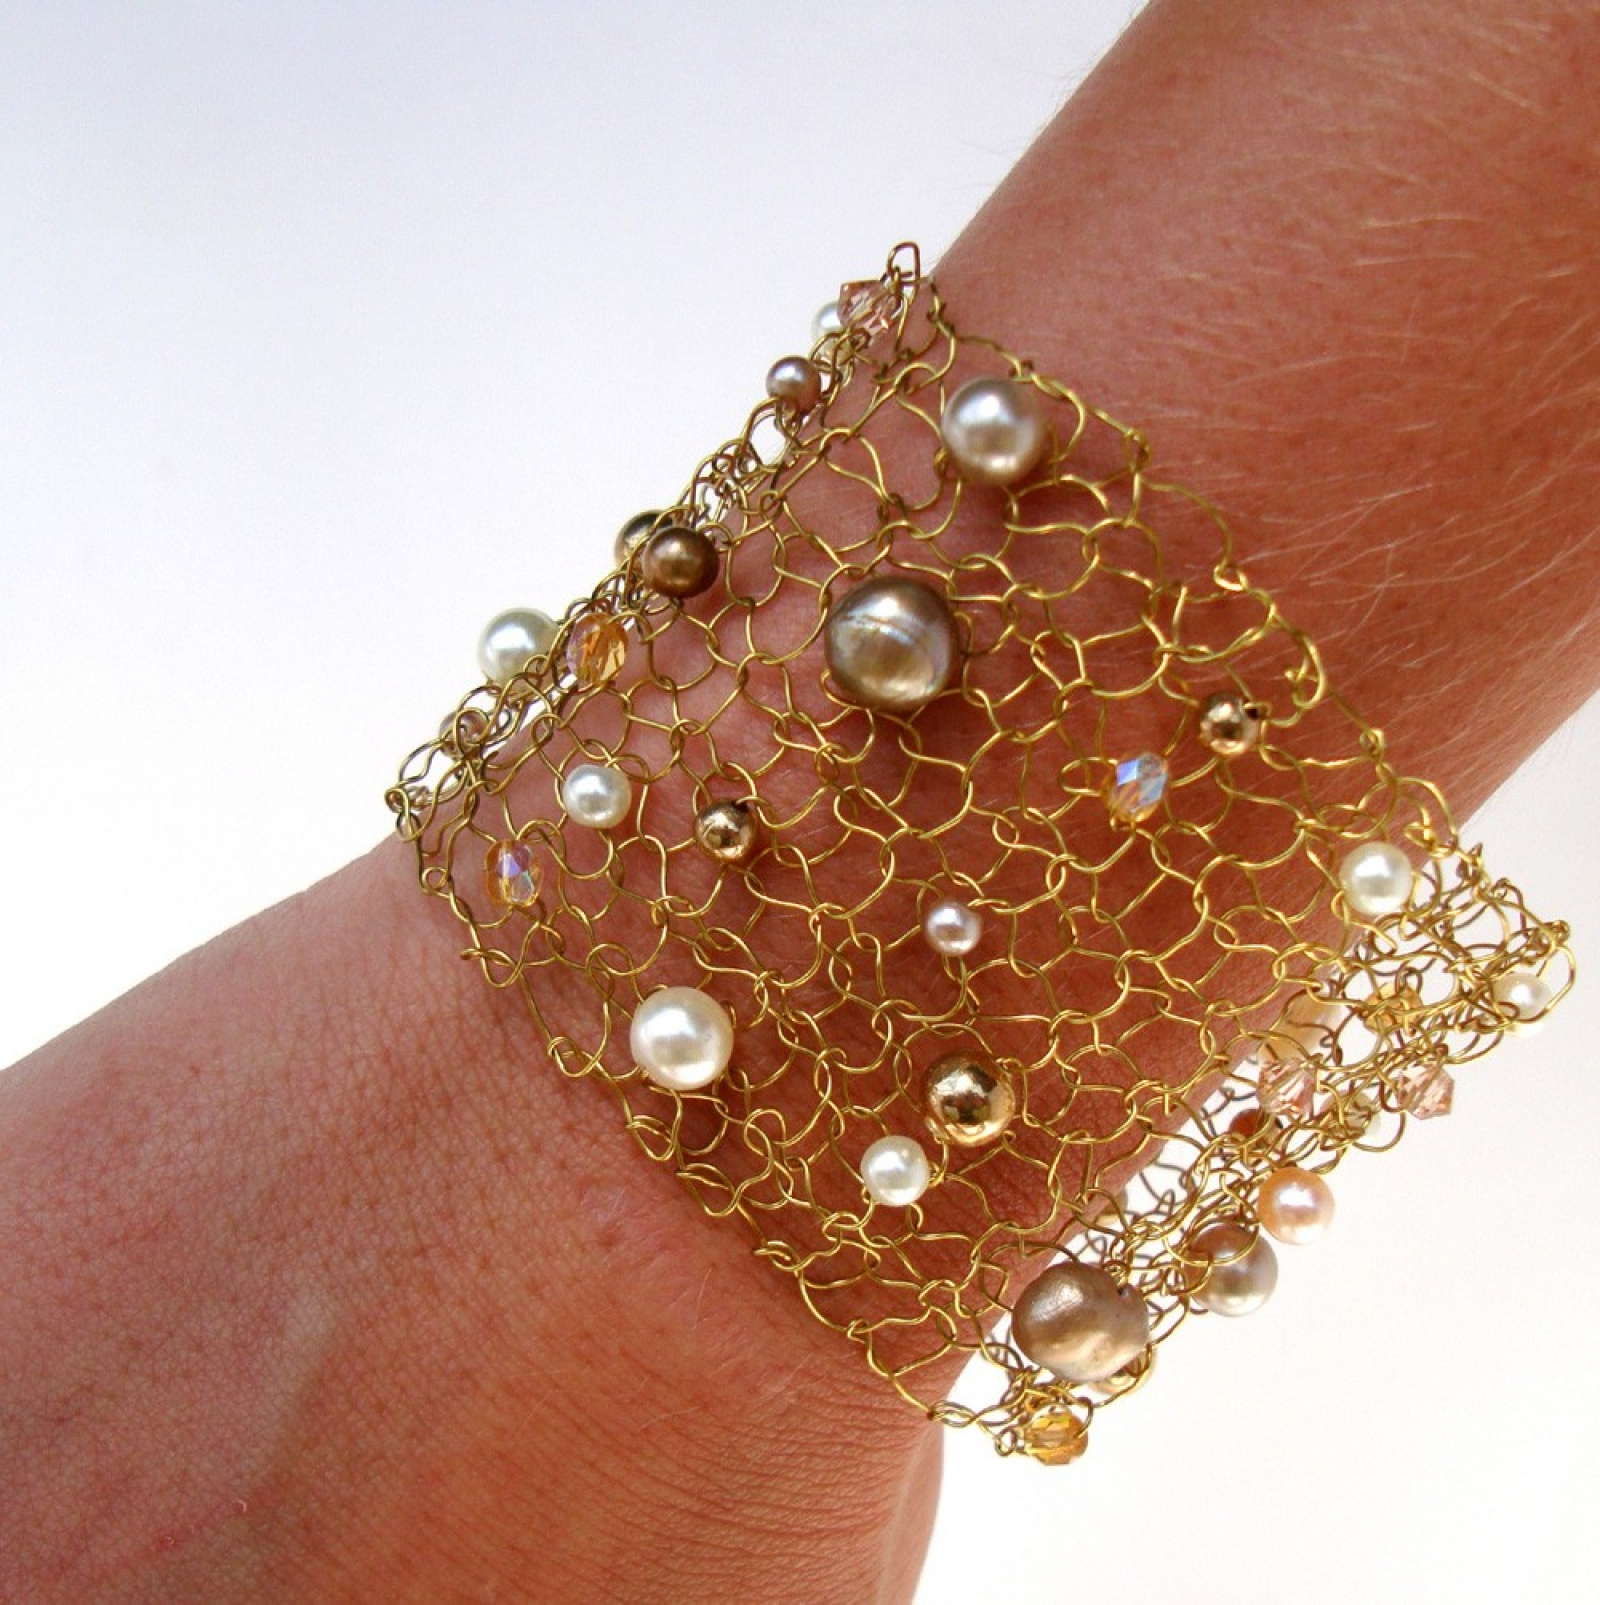 Wide Gold Cuff Bracelet Wire Knit Jewelry Pearl Modern Chic Mesh Lace Arm